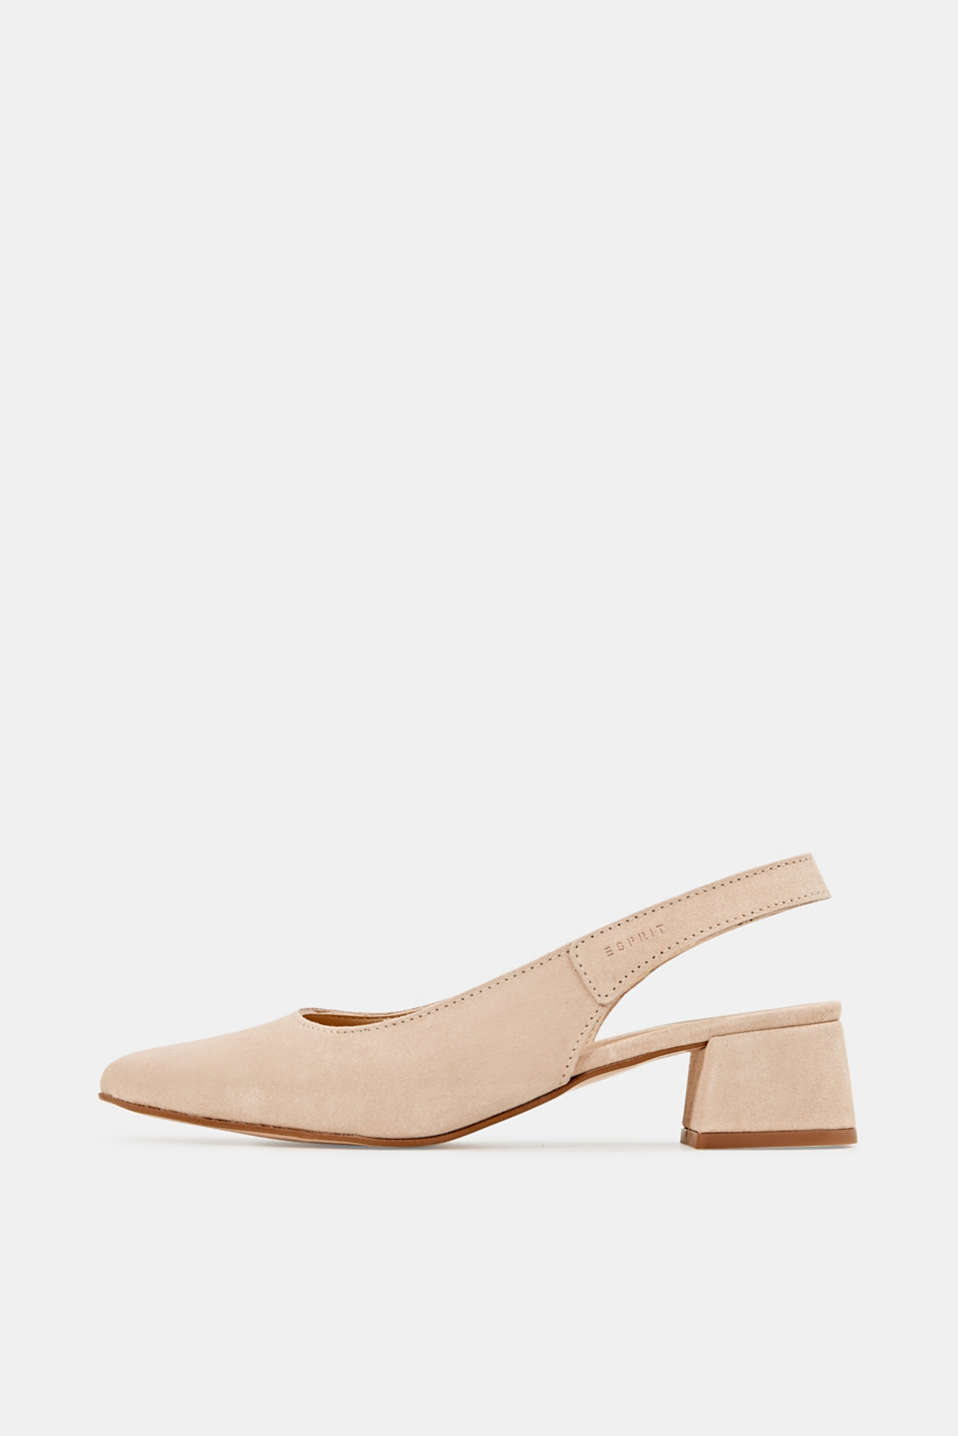 Leather sling back court shoes, NUDE, detail image number 0